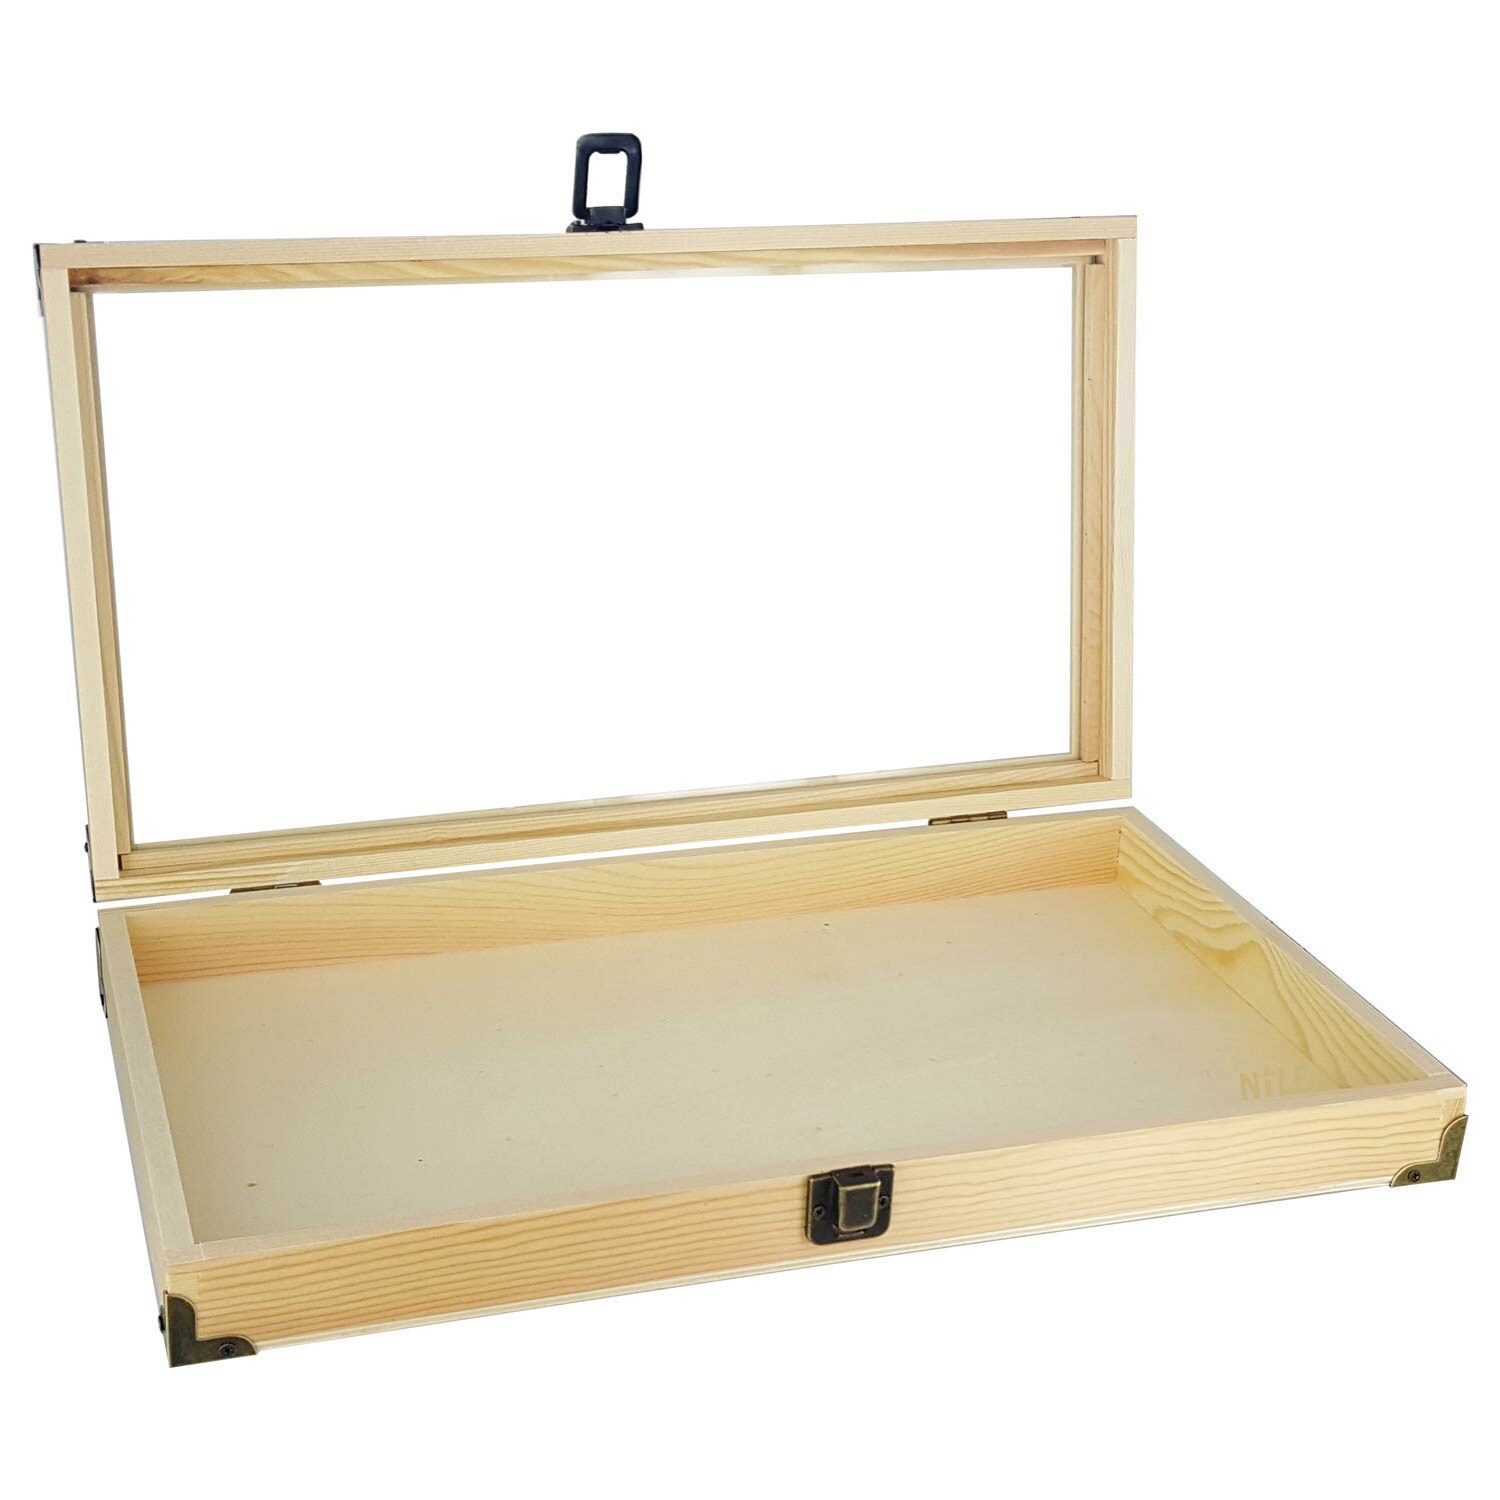 Shop Ikee Design Natural Wooden Color Glass Top Jewelry Display Case Accessories Storage Box With Brass C - Free Shipping On Orders Over $45 - Overstock - ...